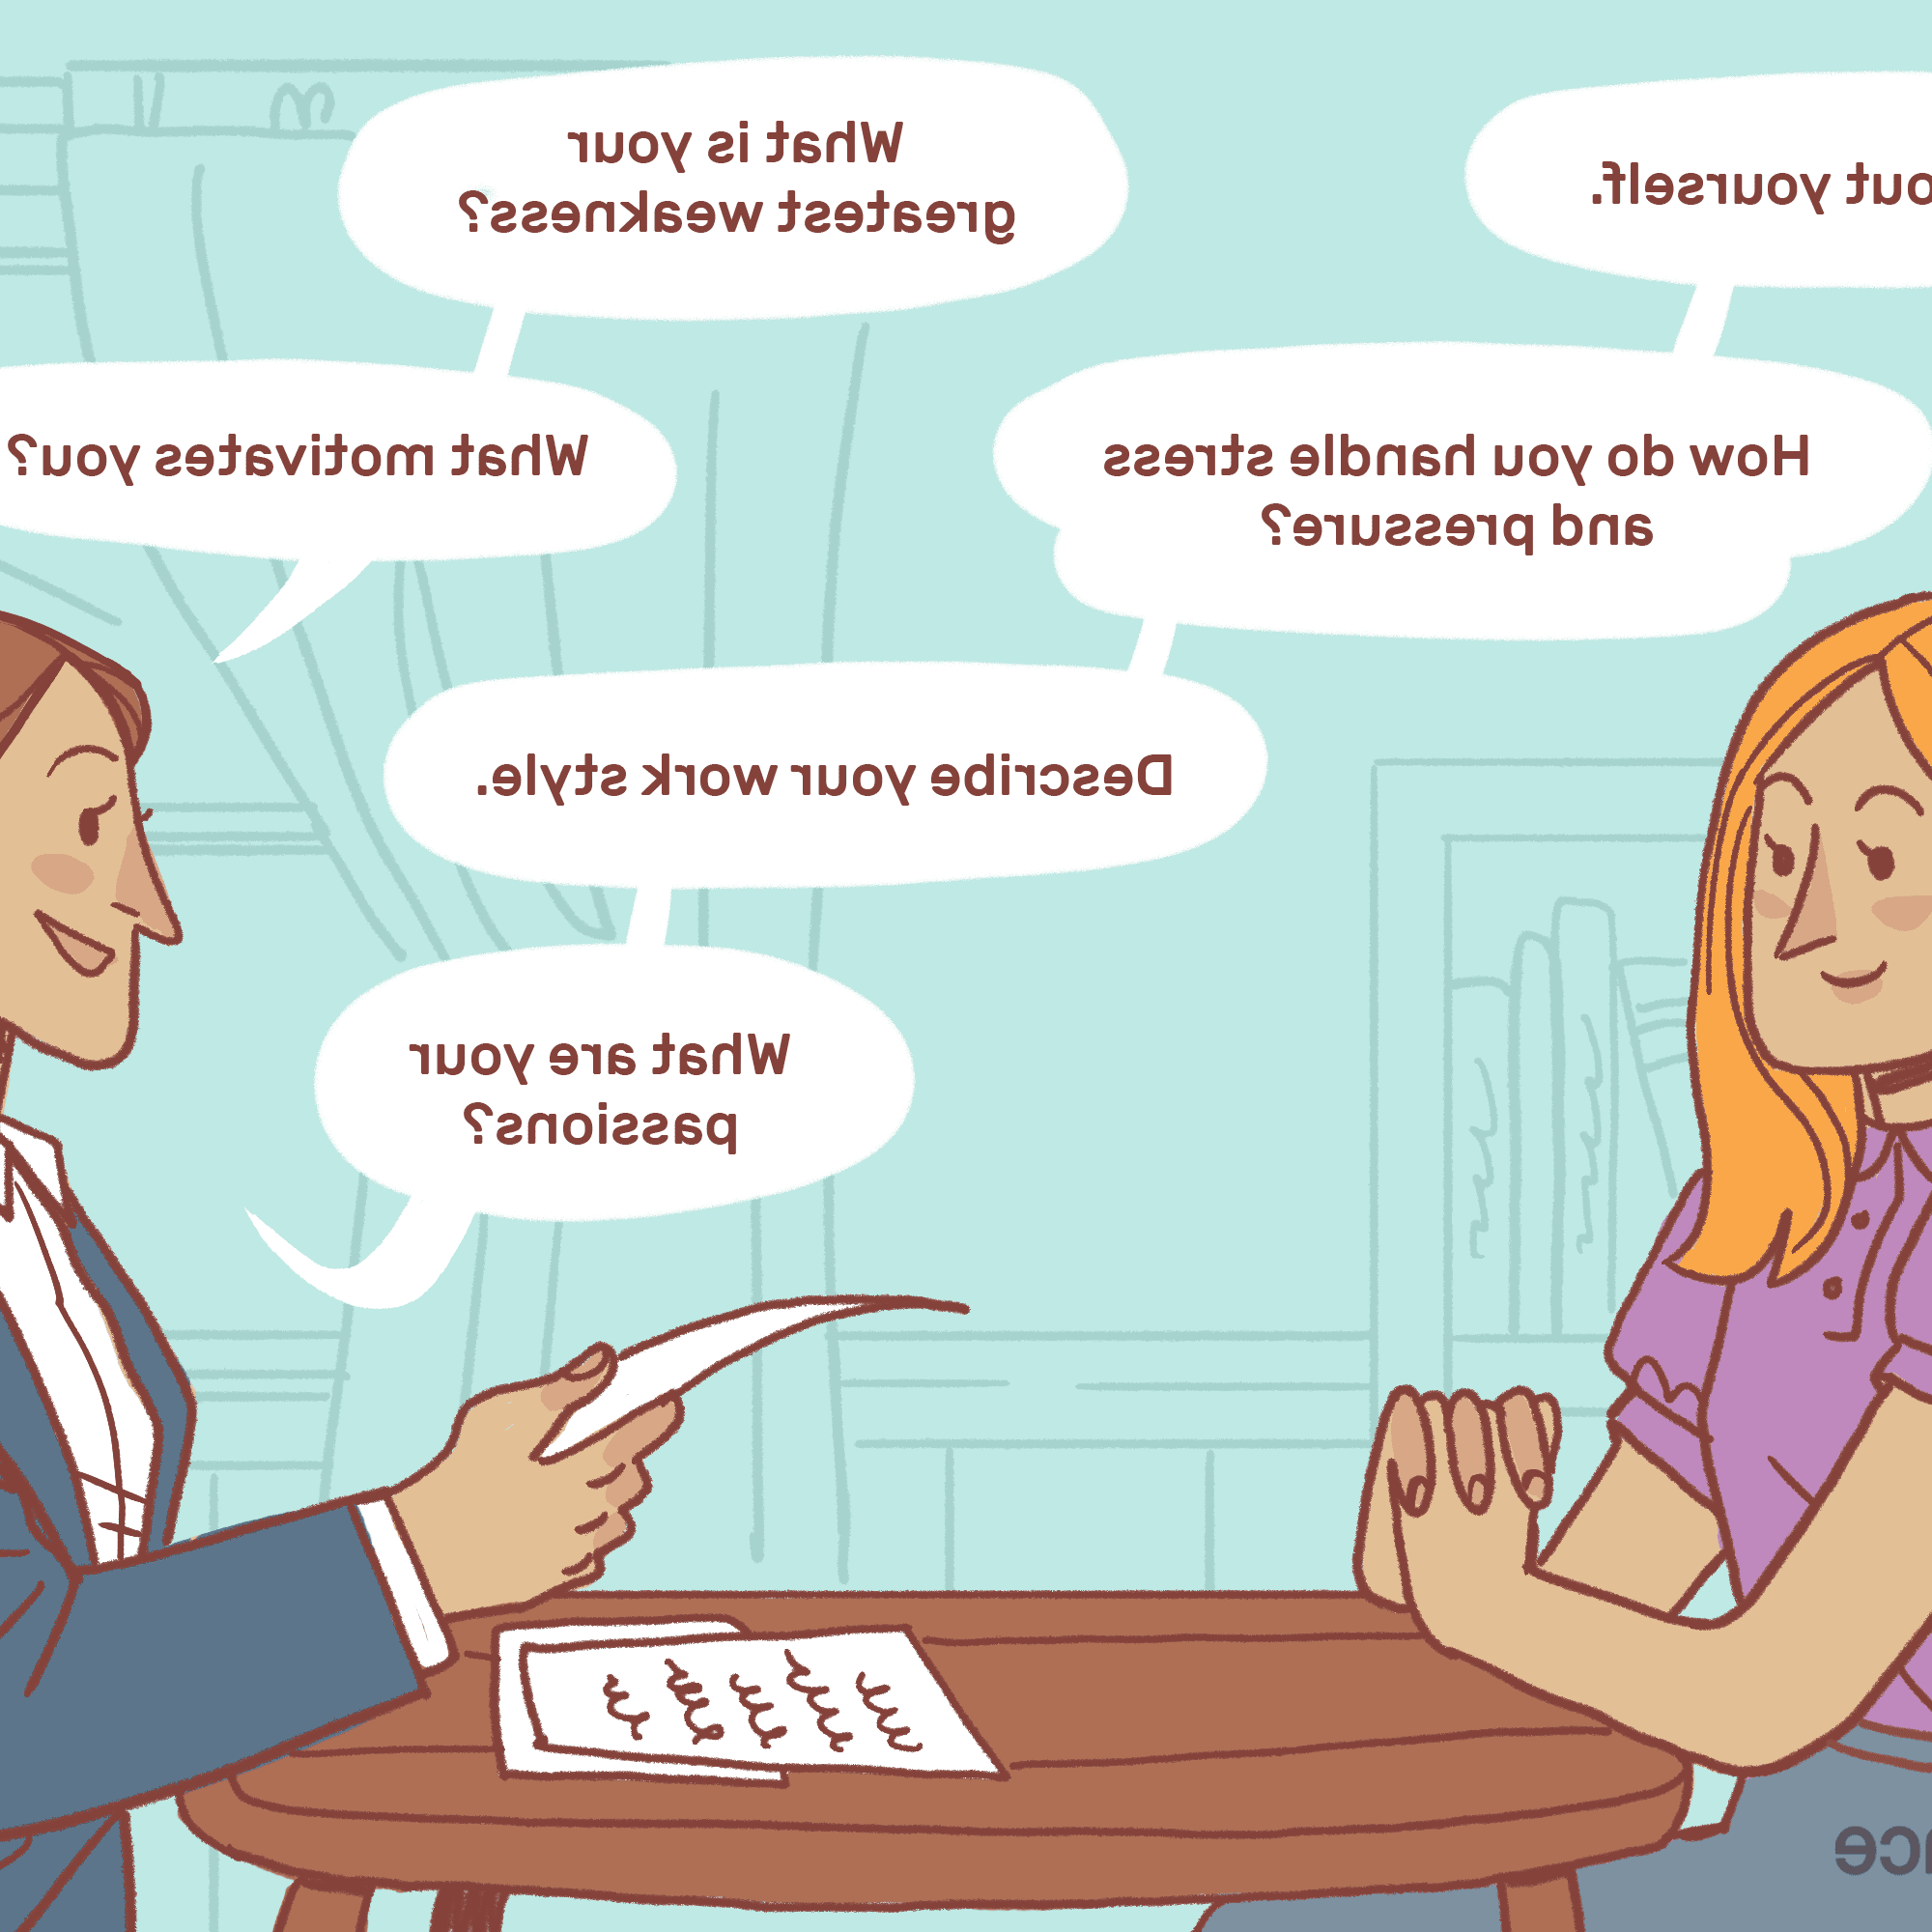 What are the 10 most common interview questions and answers?